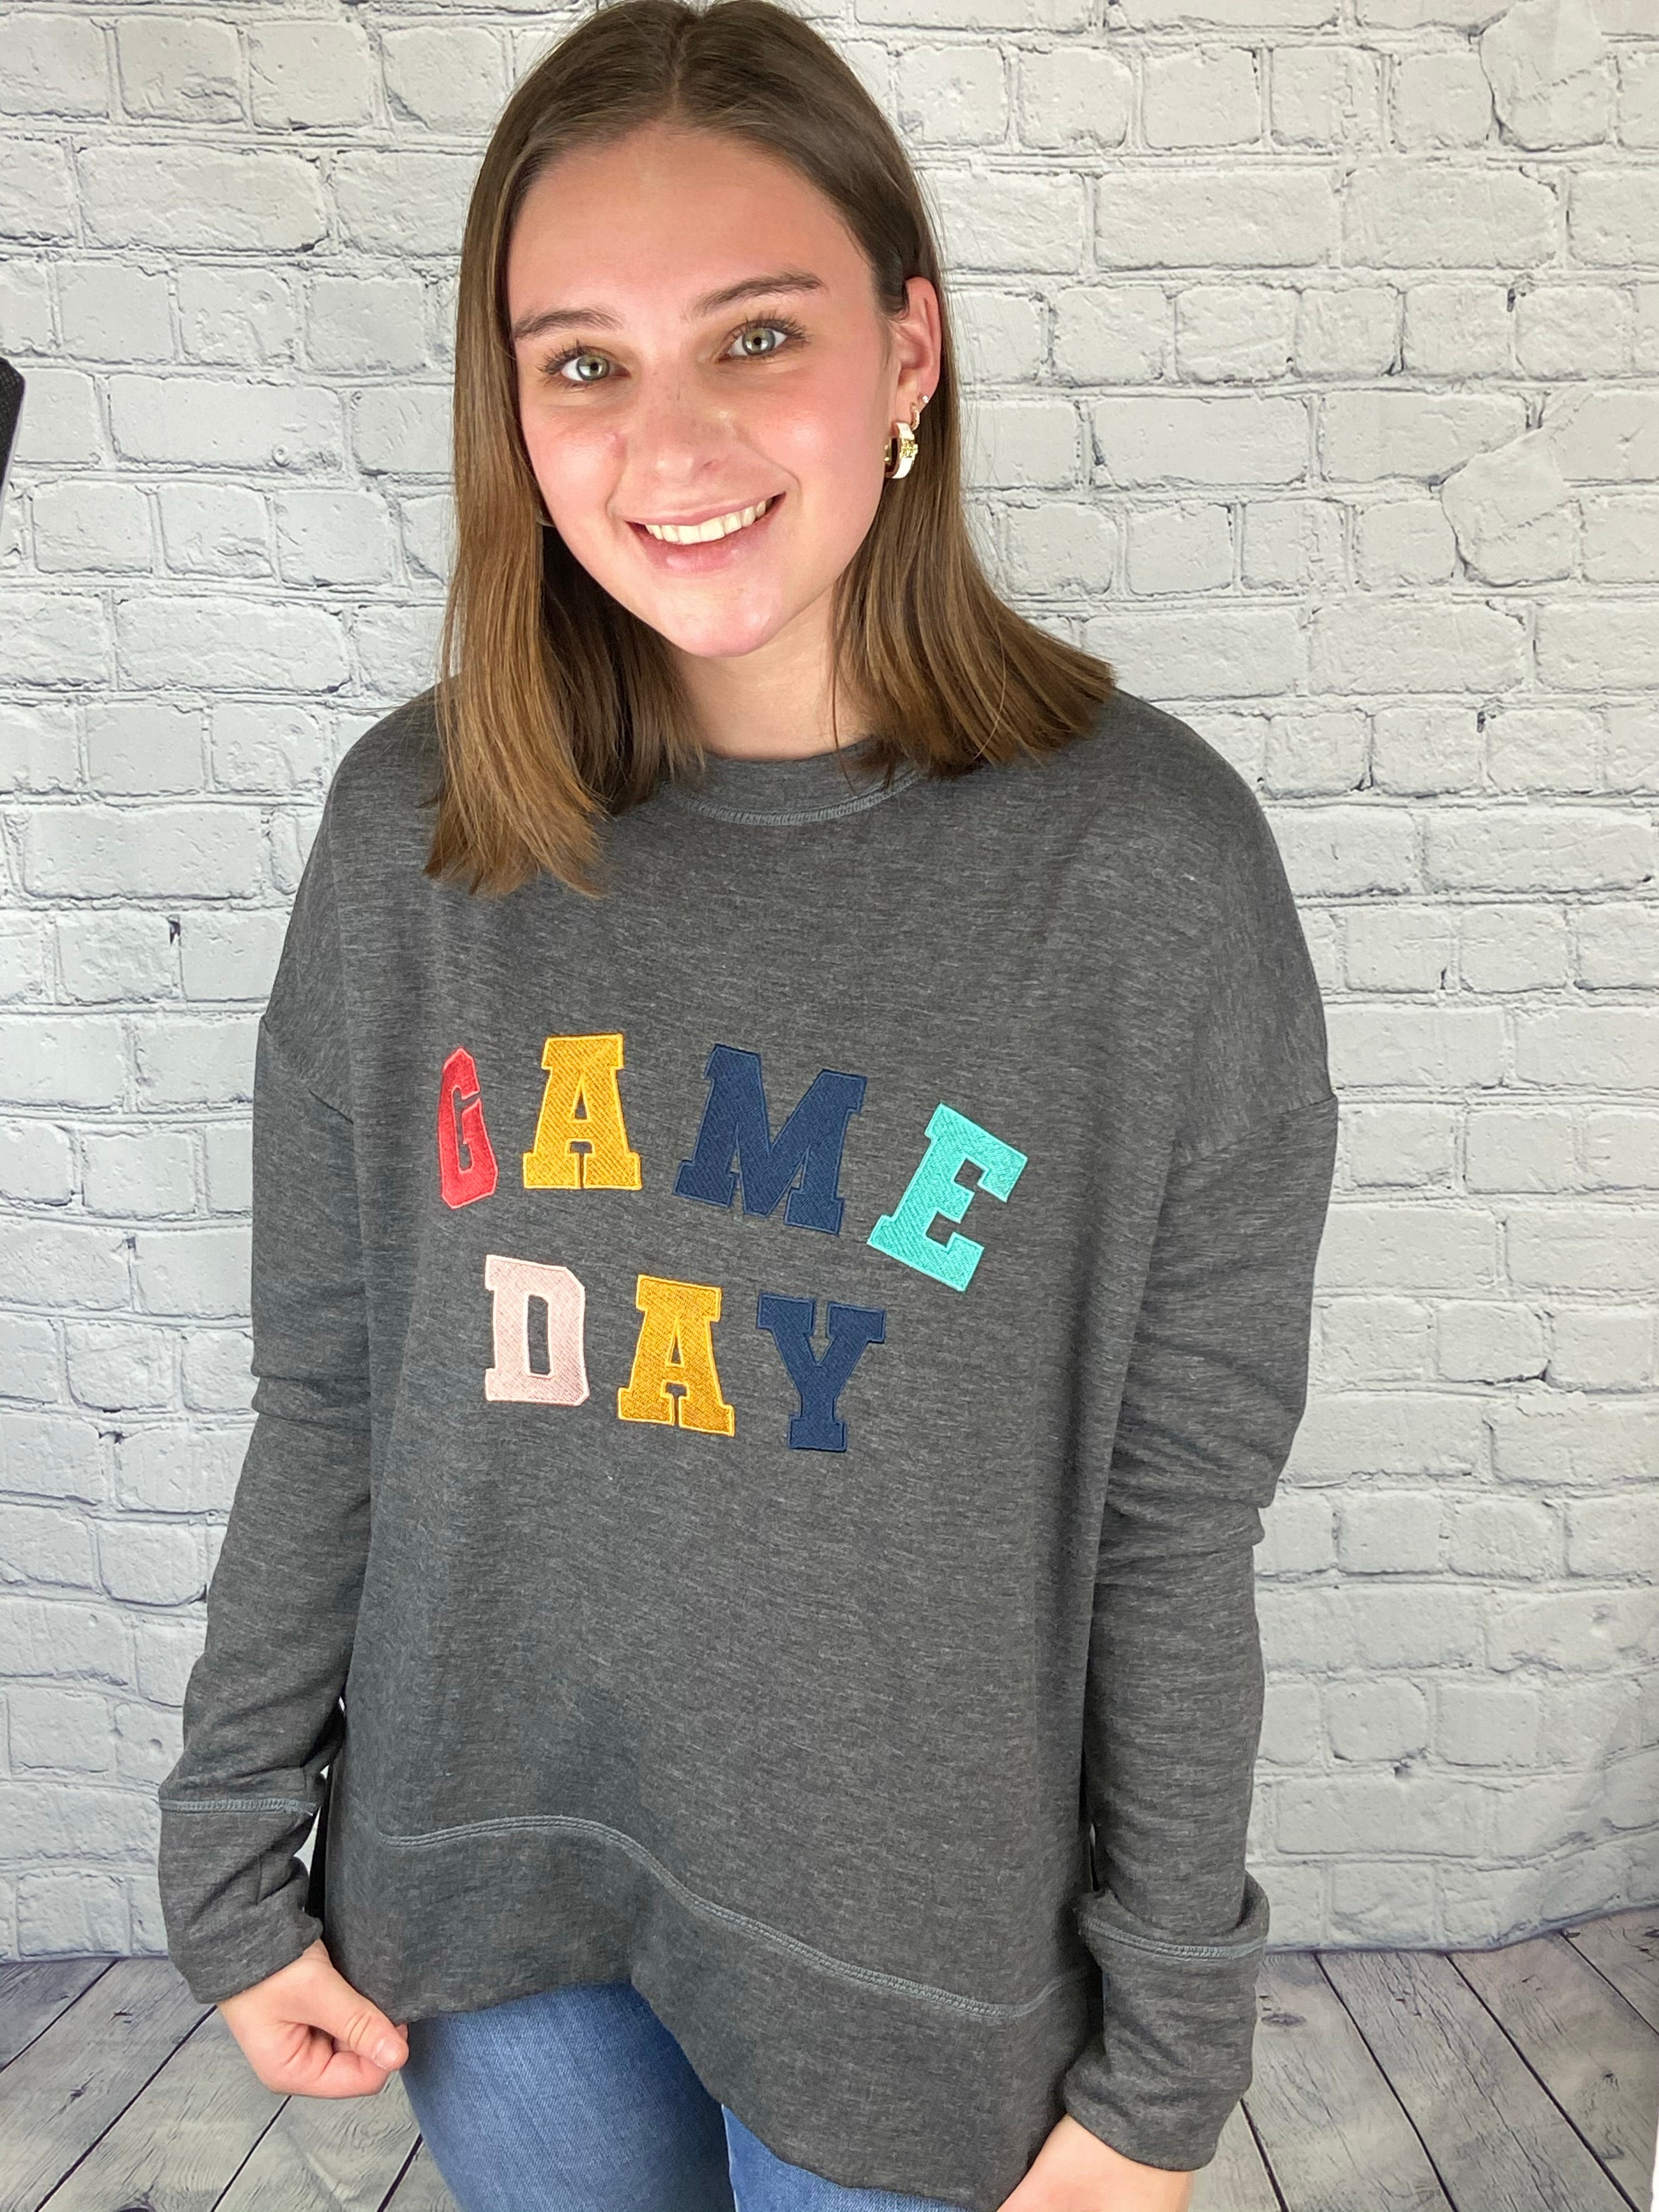 Game Day Colorful Sweatshirt